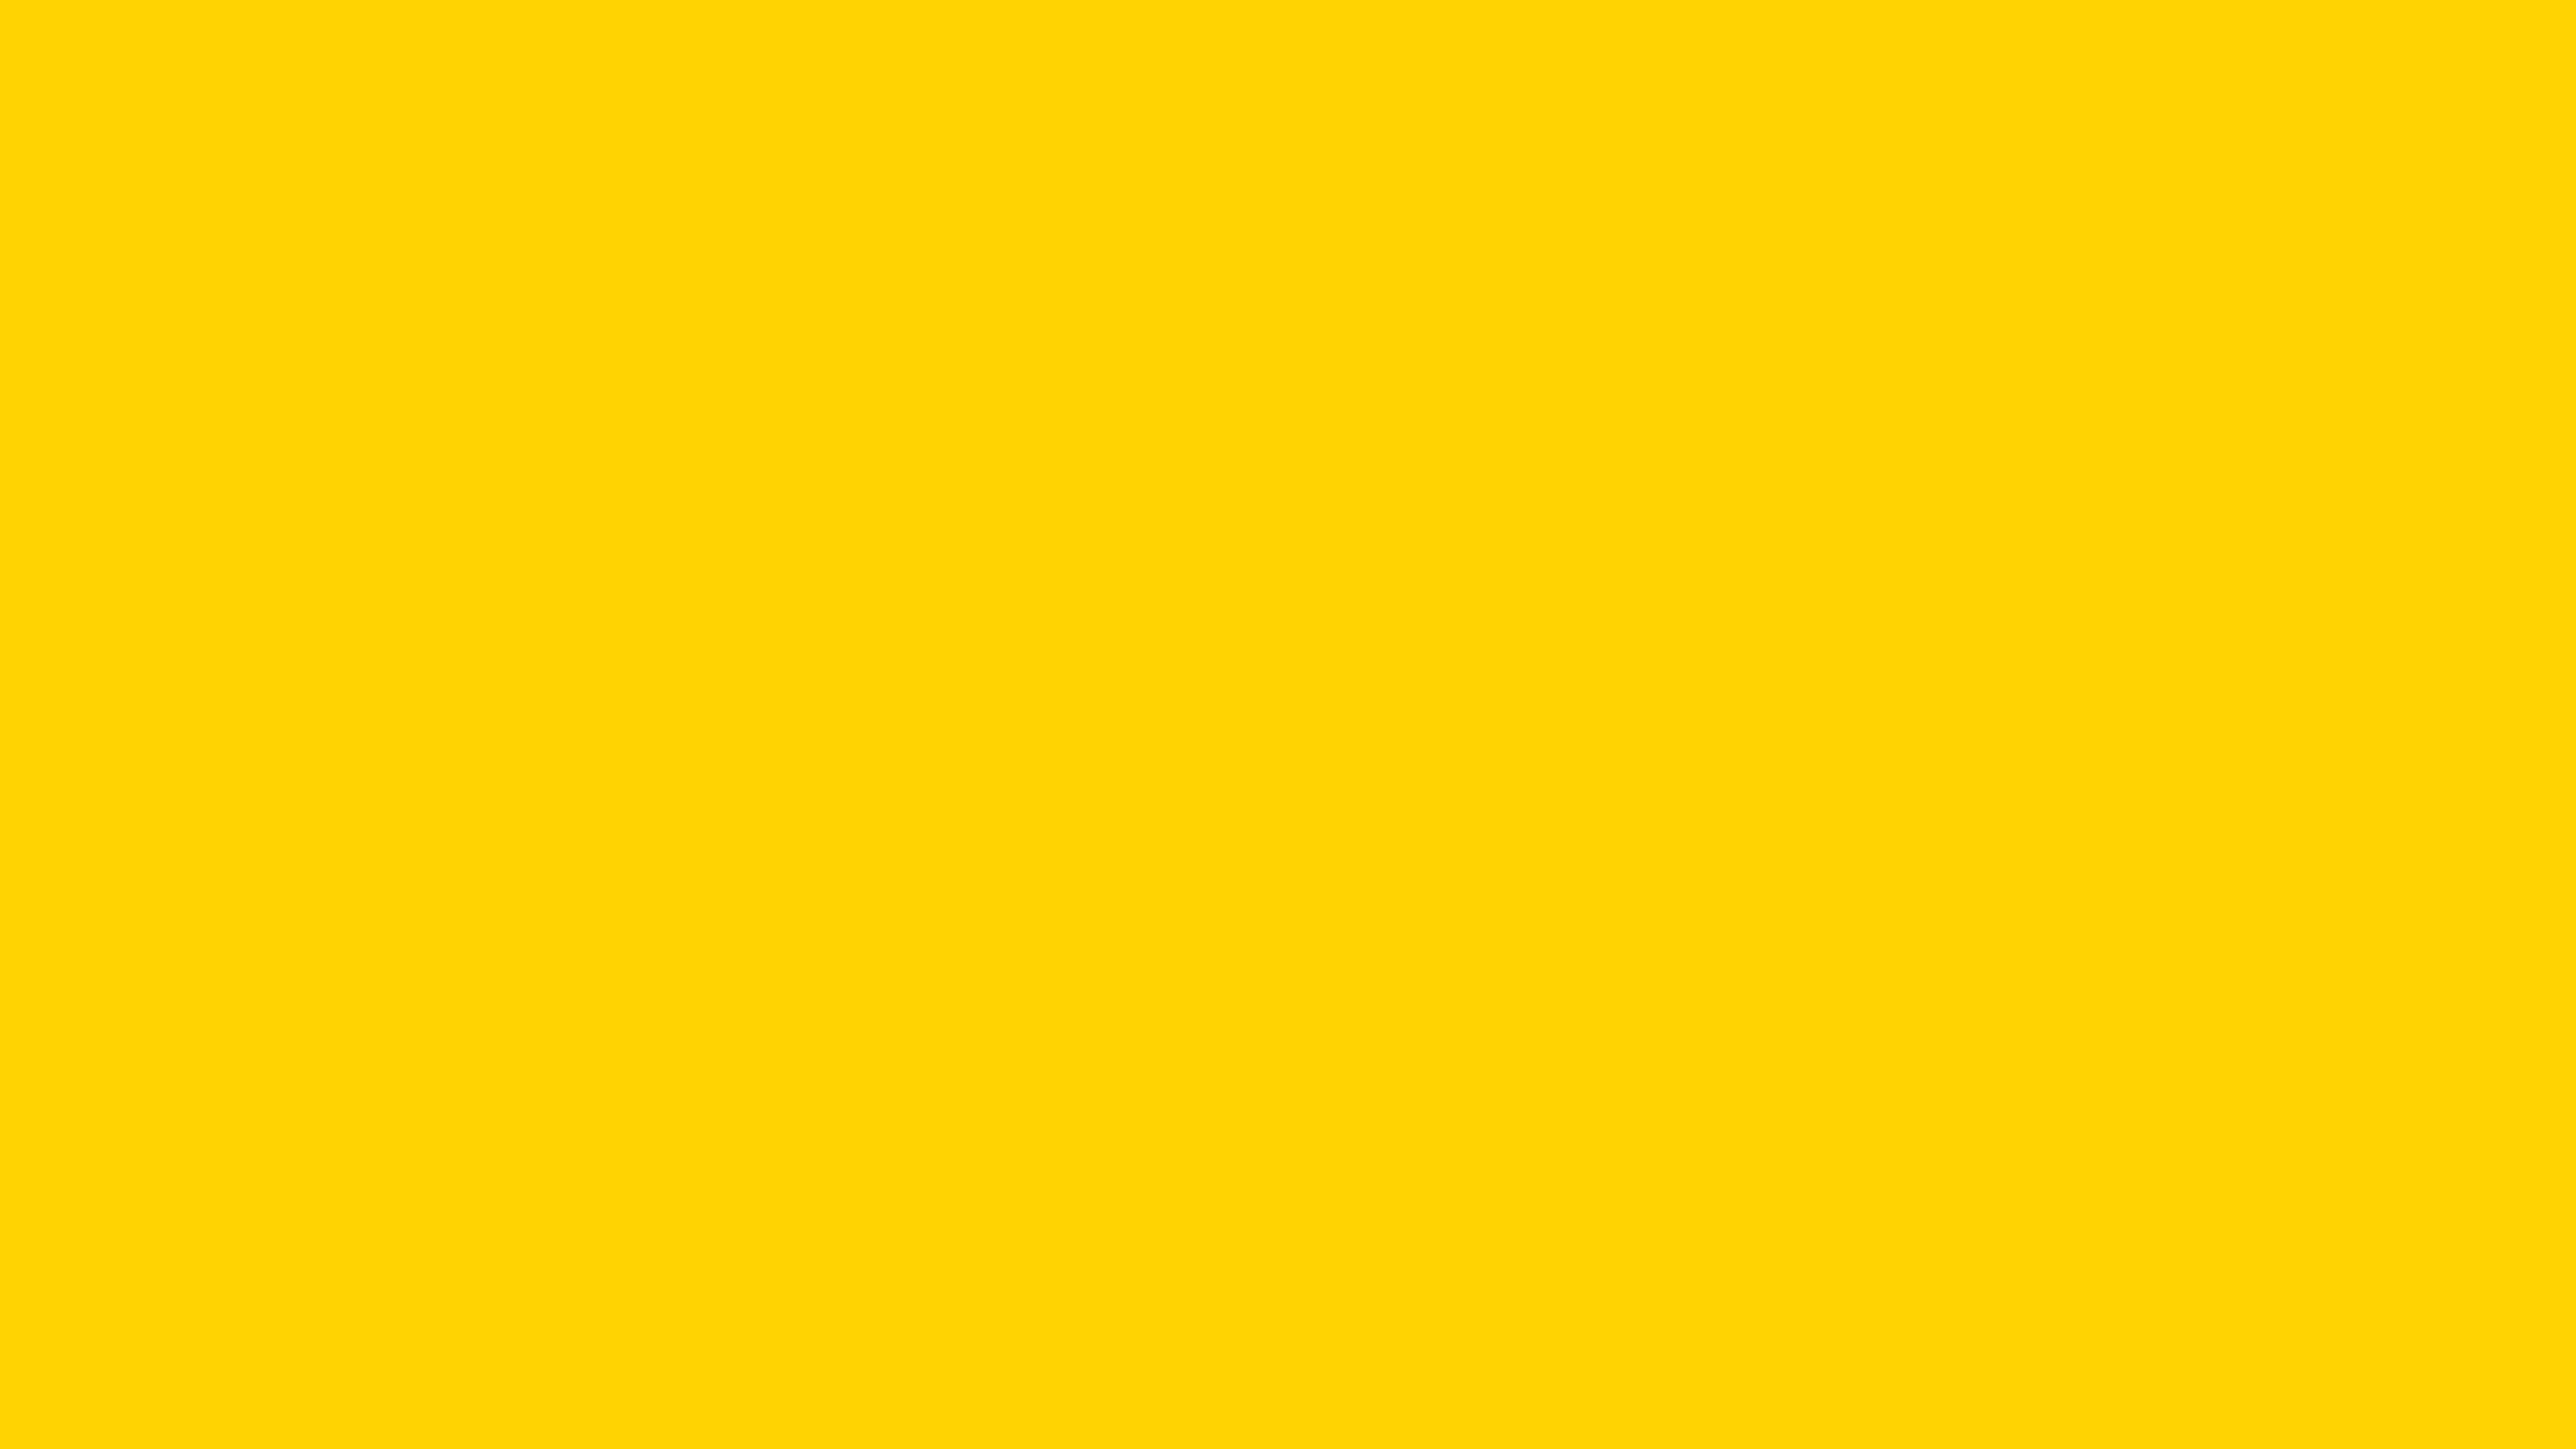 4096x2304 Cyber Yellow Solid Color Background